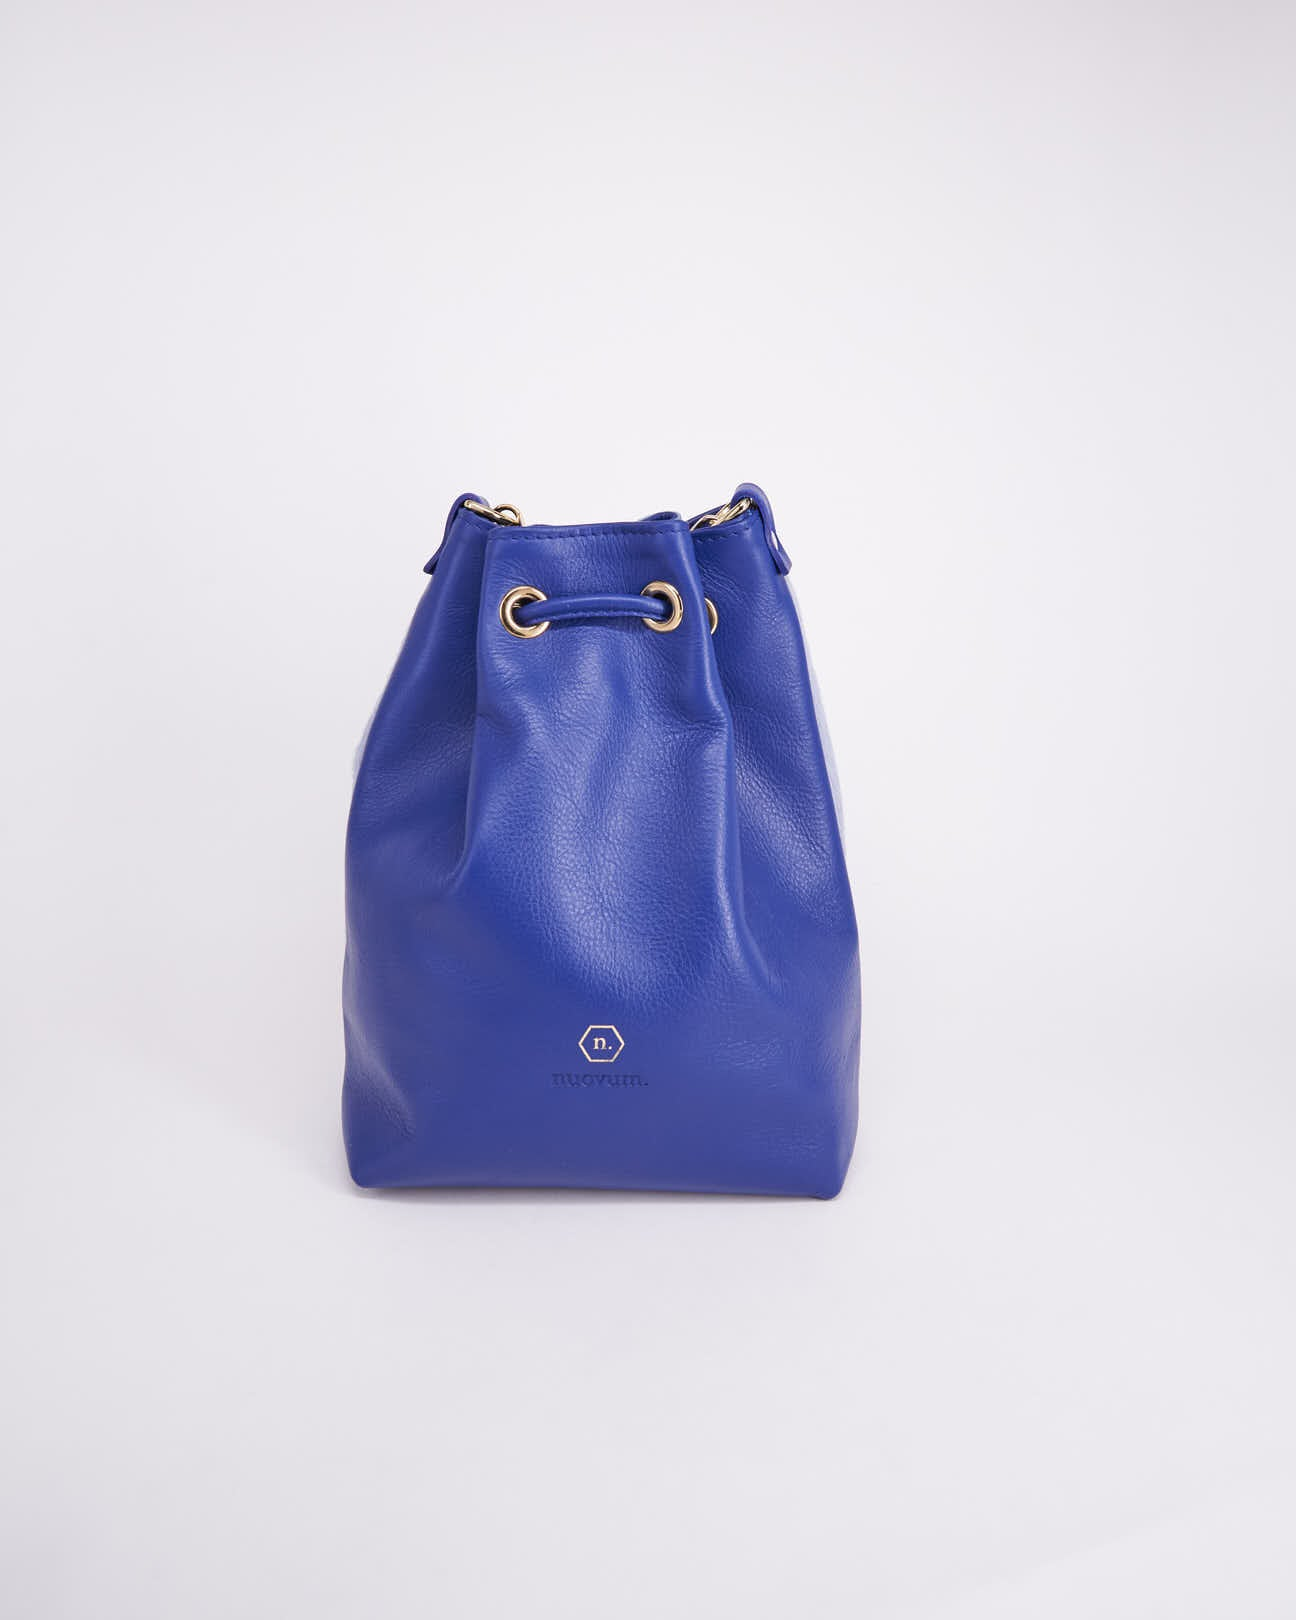 Bag-Nuo Sac-Nuovum-Leather-Blue-localdesigners-Barcelona-Nuovum-Handmade-2